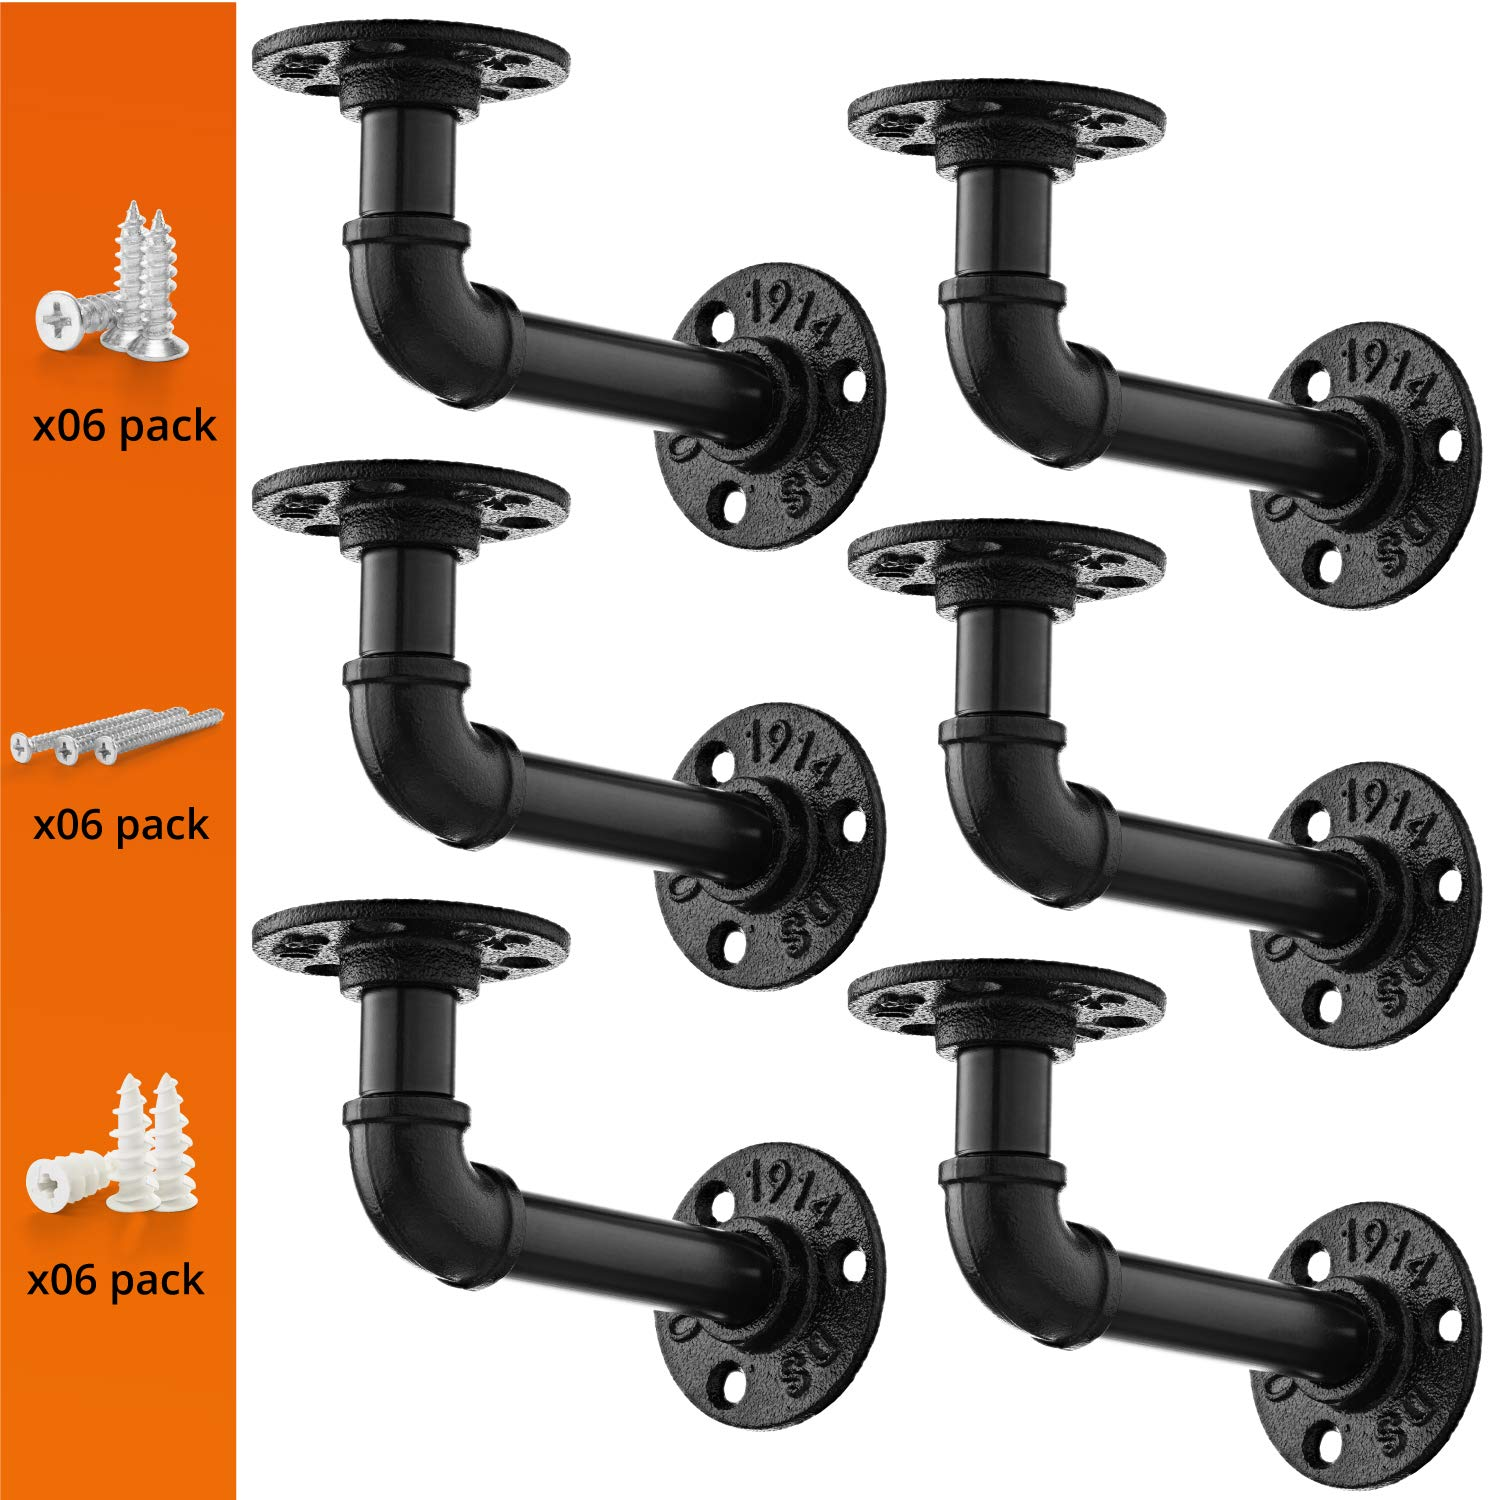 Pipe Bracket (6 Packs Black) - Industrial DIY L Pipe Shelf Bracket for Wood Floating Shelf Vintage Look - Rustic Pipe Decor Wall Mount with All Accessories Needed (Shelf Not Included) (6 packs L type) by DIY ZONE